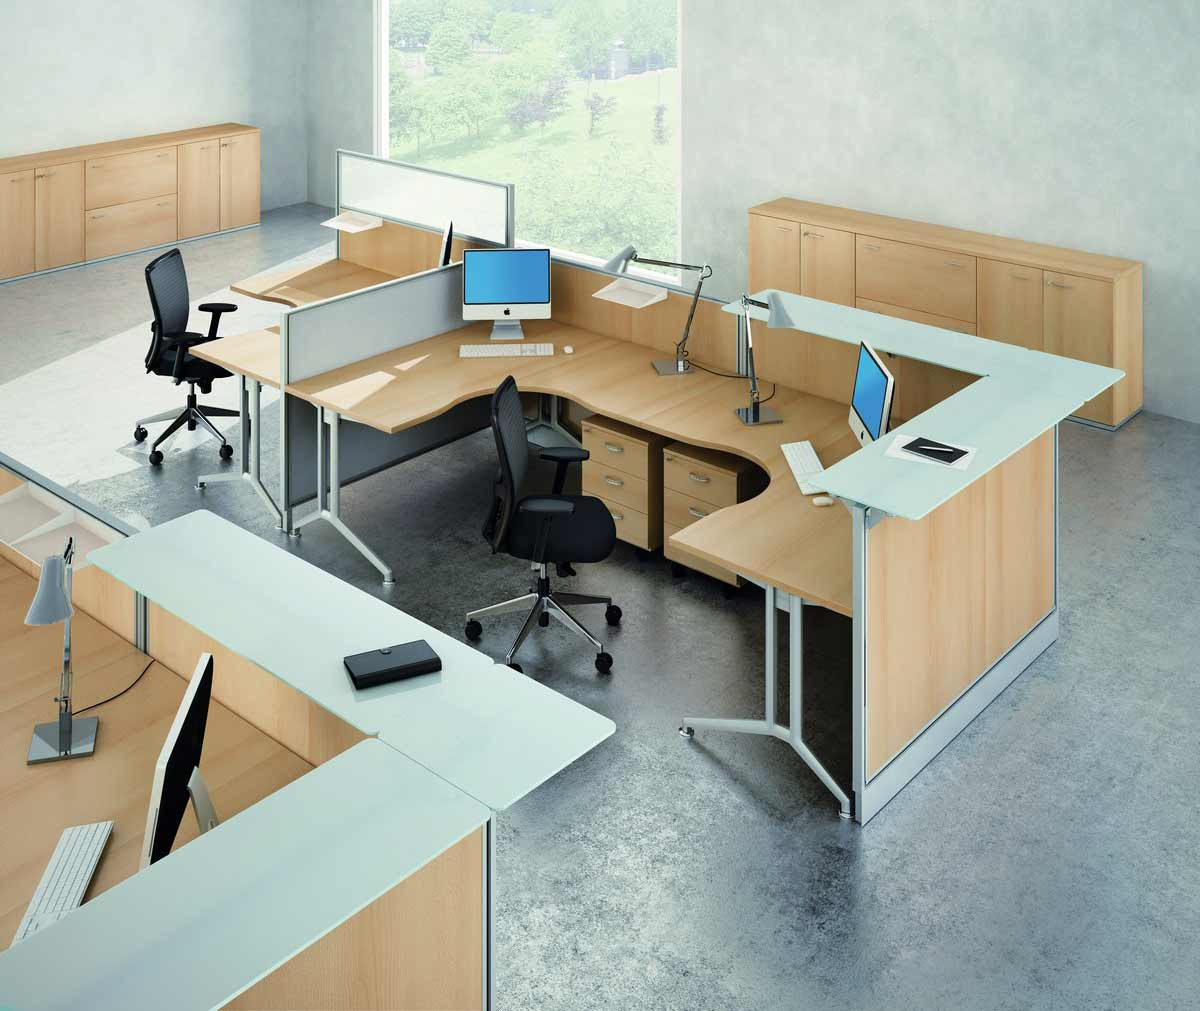 Office Modular Cubicle Desk System